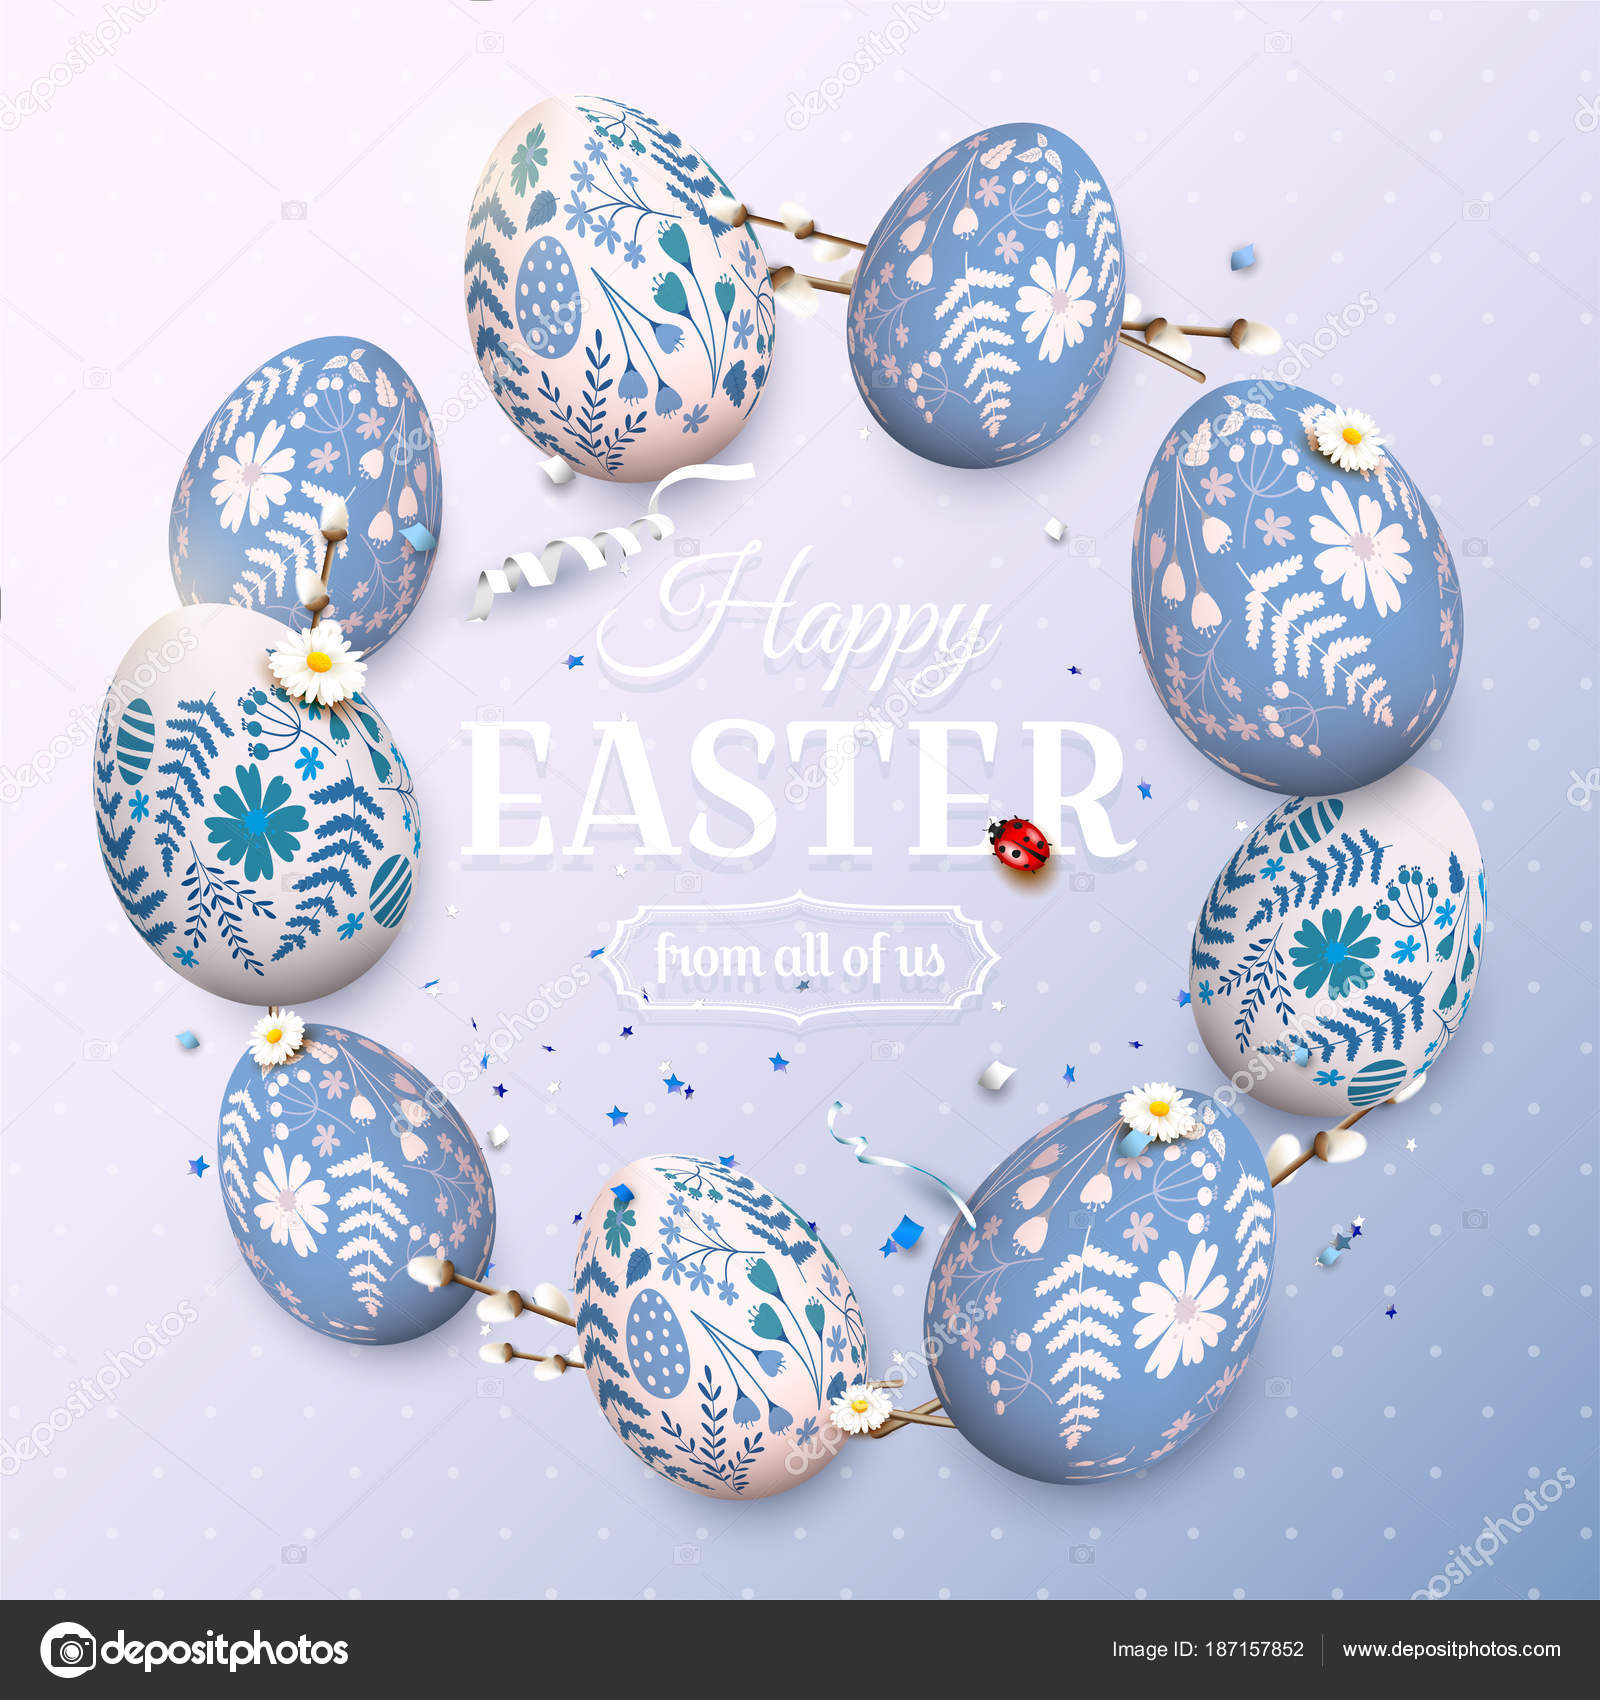 Traditional easter greeting card stock vector kaktus2536 187157852 traditional easter greeting card stock vector m4hsunfo